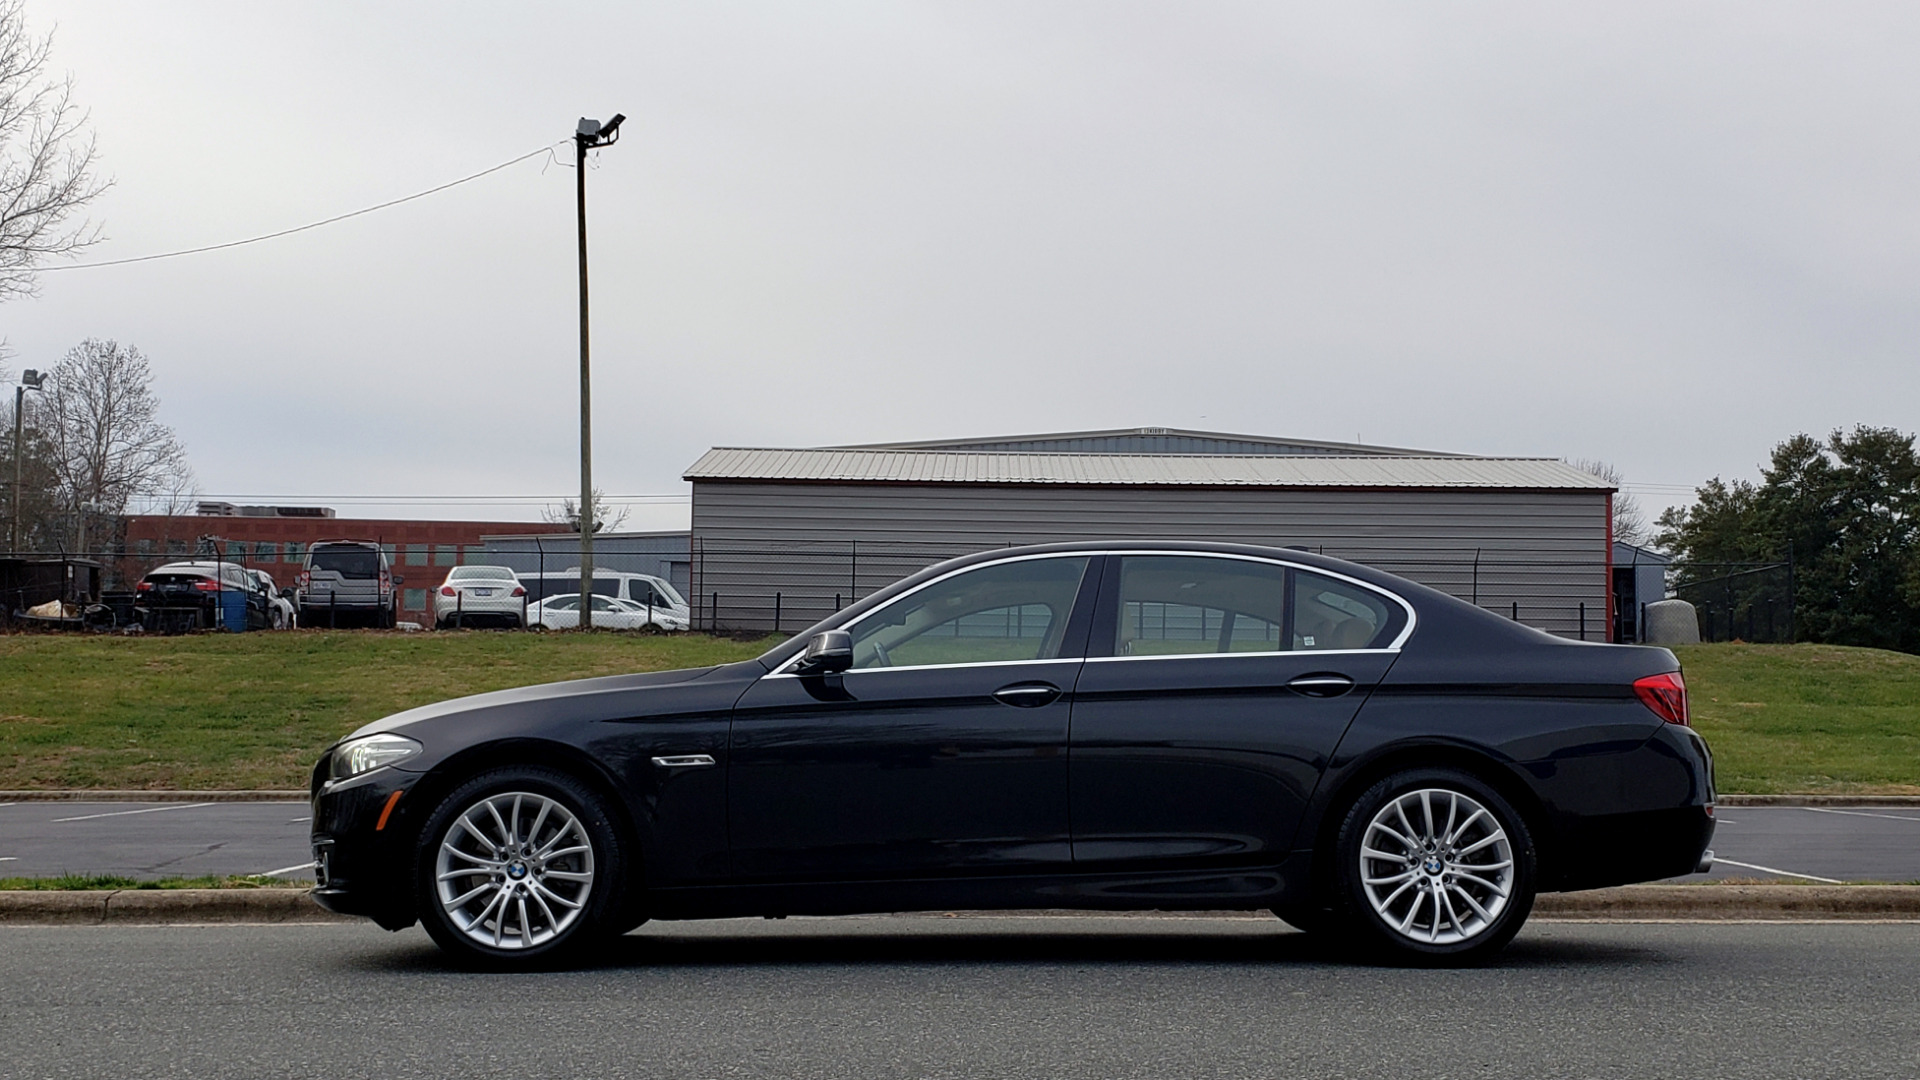 Used 2016 BMW 5 SERIES 528i XDRIVE / PREM PKG / DRVR ASST PLUS / LUXURY / COLD WTHR for sale Sold at Formula Imports in Charlotte NC 28227 2